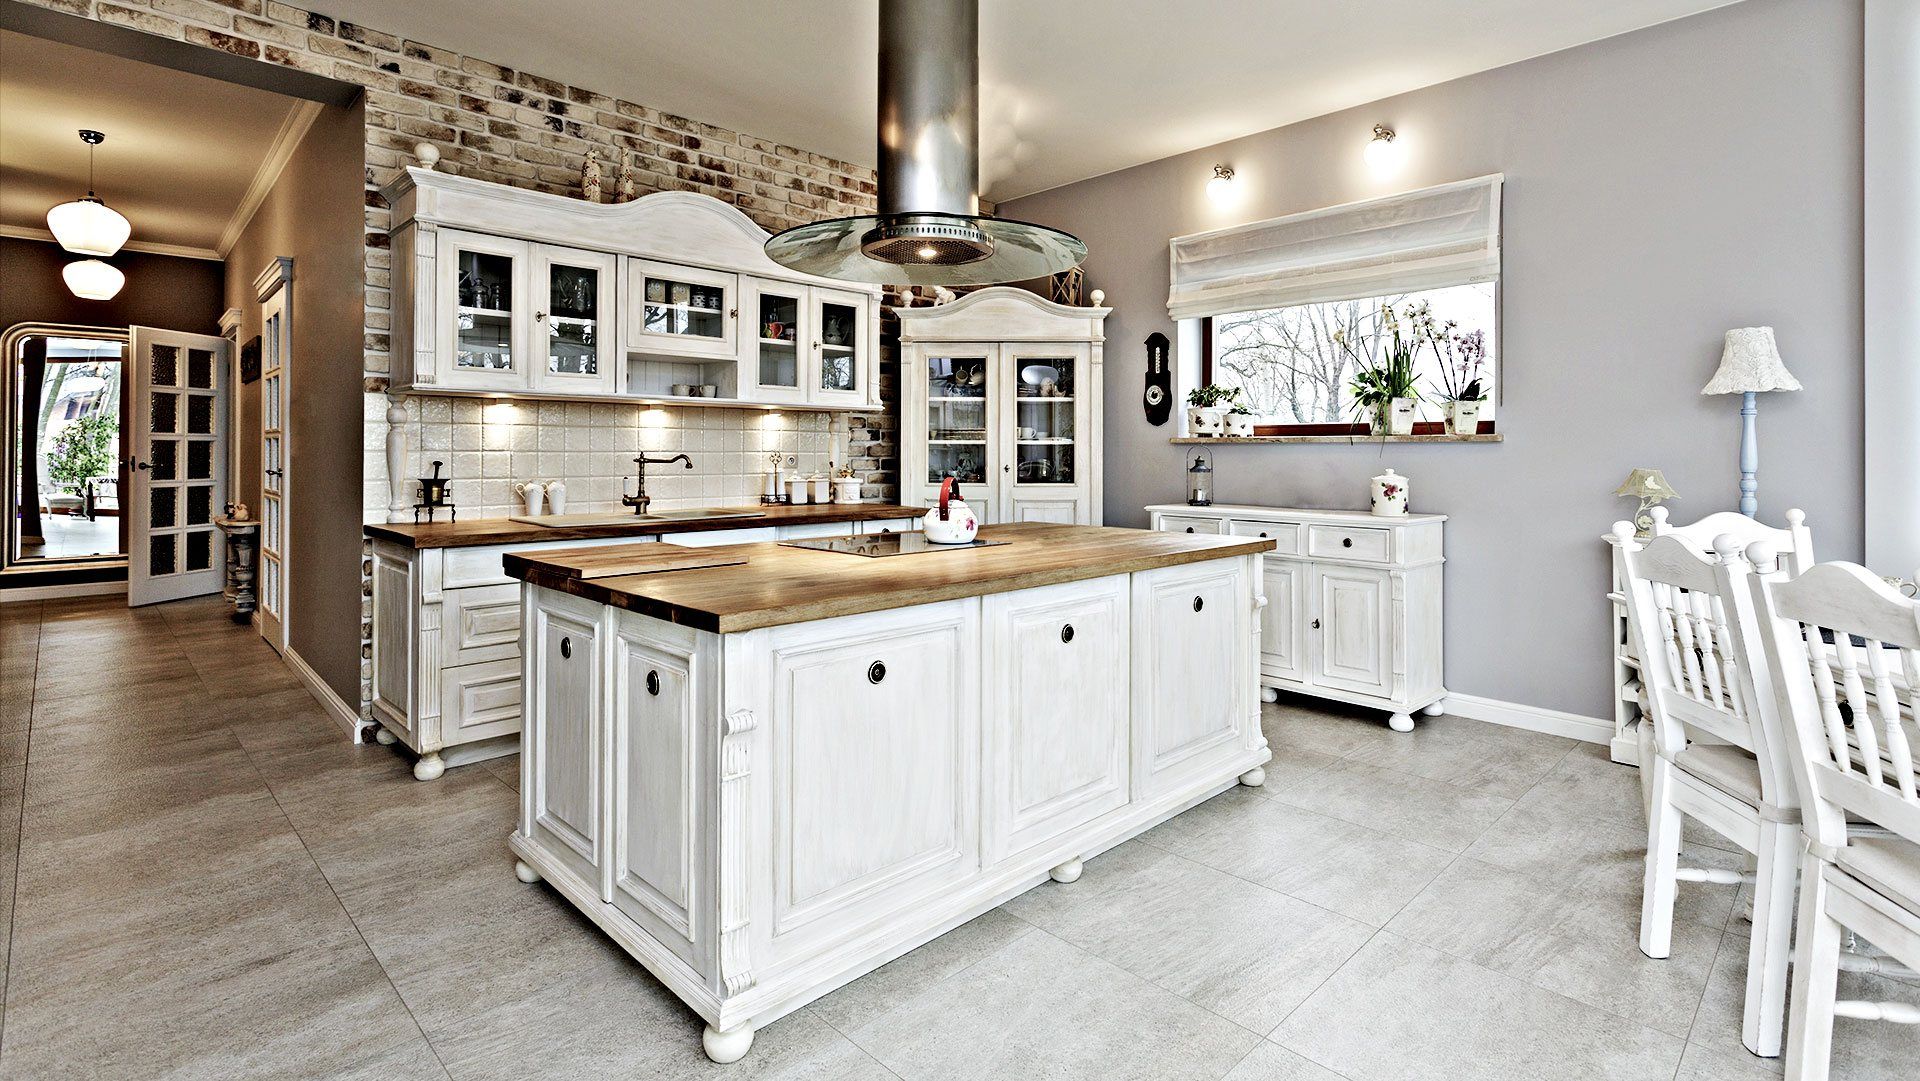 Home | San Antonio Remodeling, Kitchen Remodeling and Handyman